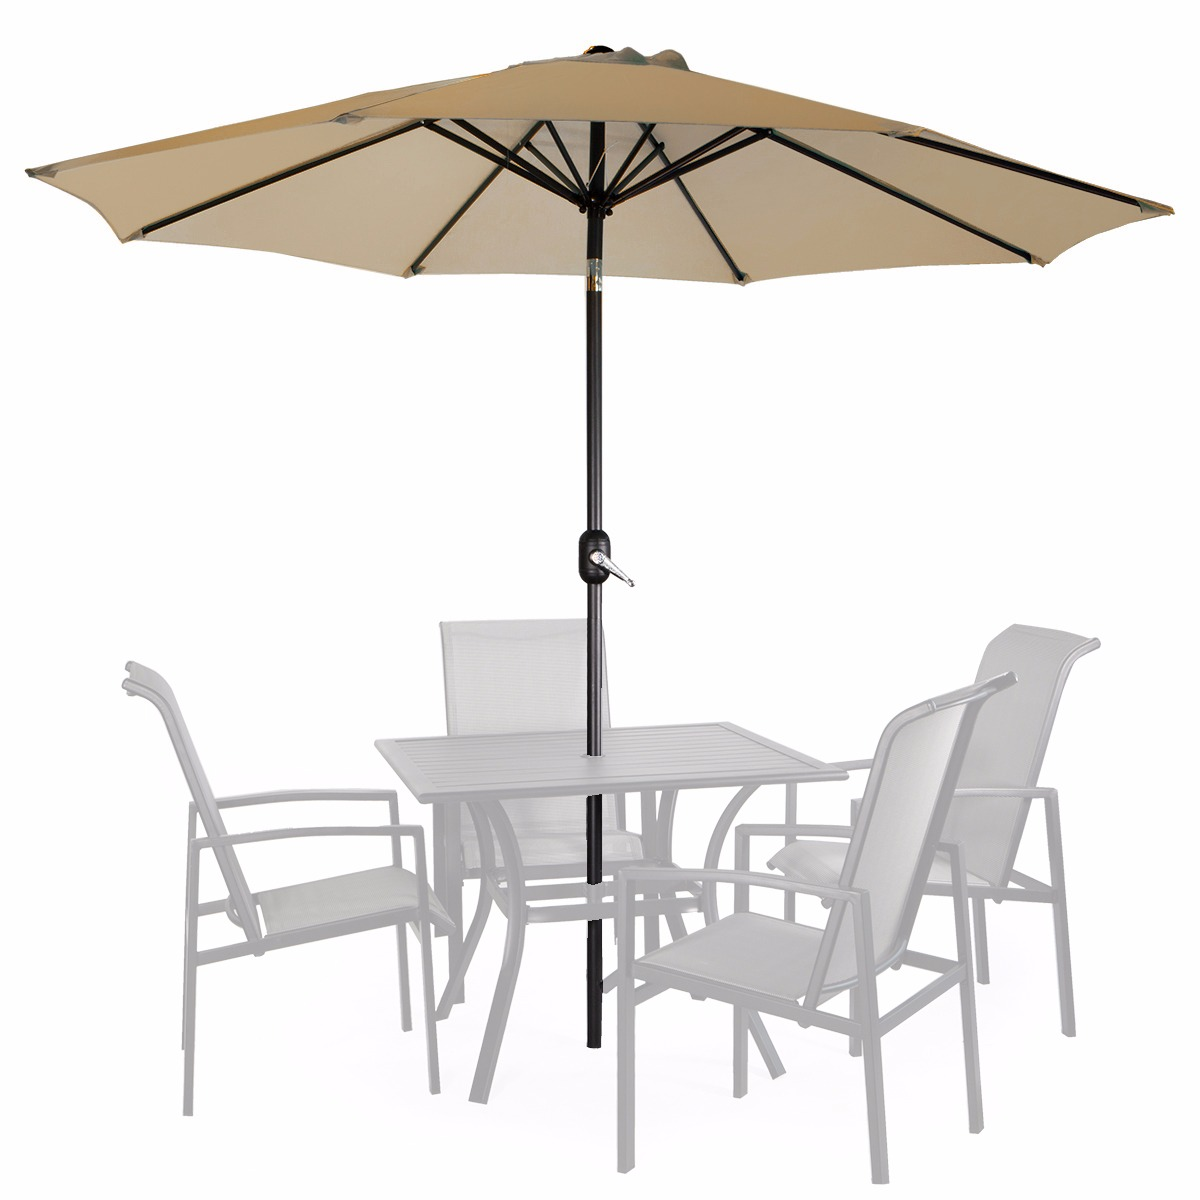 9' Patio Umbrella Round Sunshade Outdoor Canopy Tilt and Crank Tan by